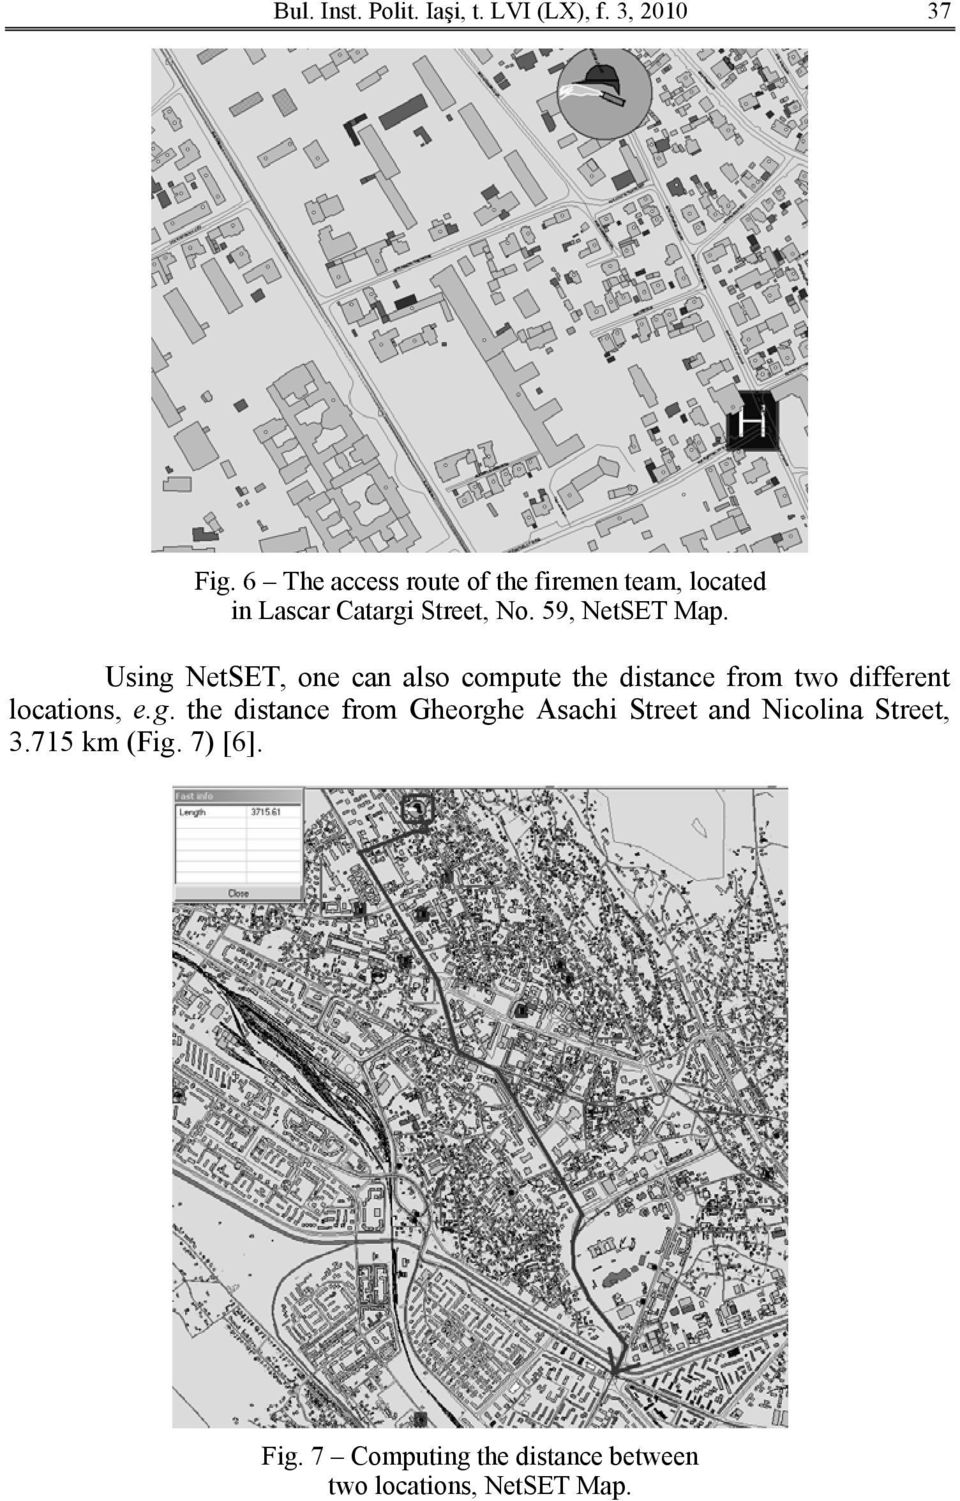 Using NetSET, one can also compute the distance from two different locations, e.g. the distance from Gheorghe Asachi Street and Nicolina Street, 3.